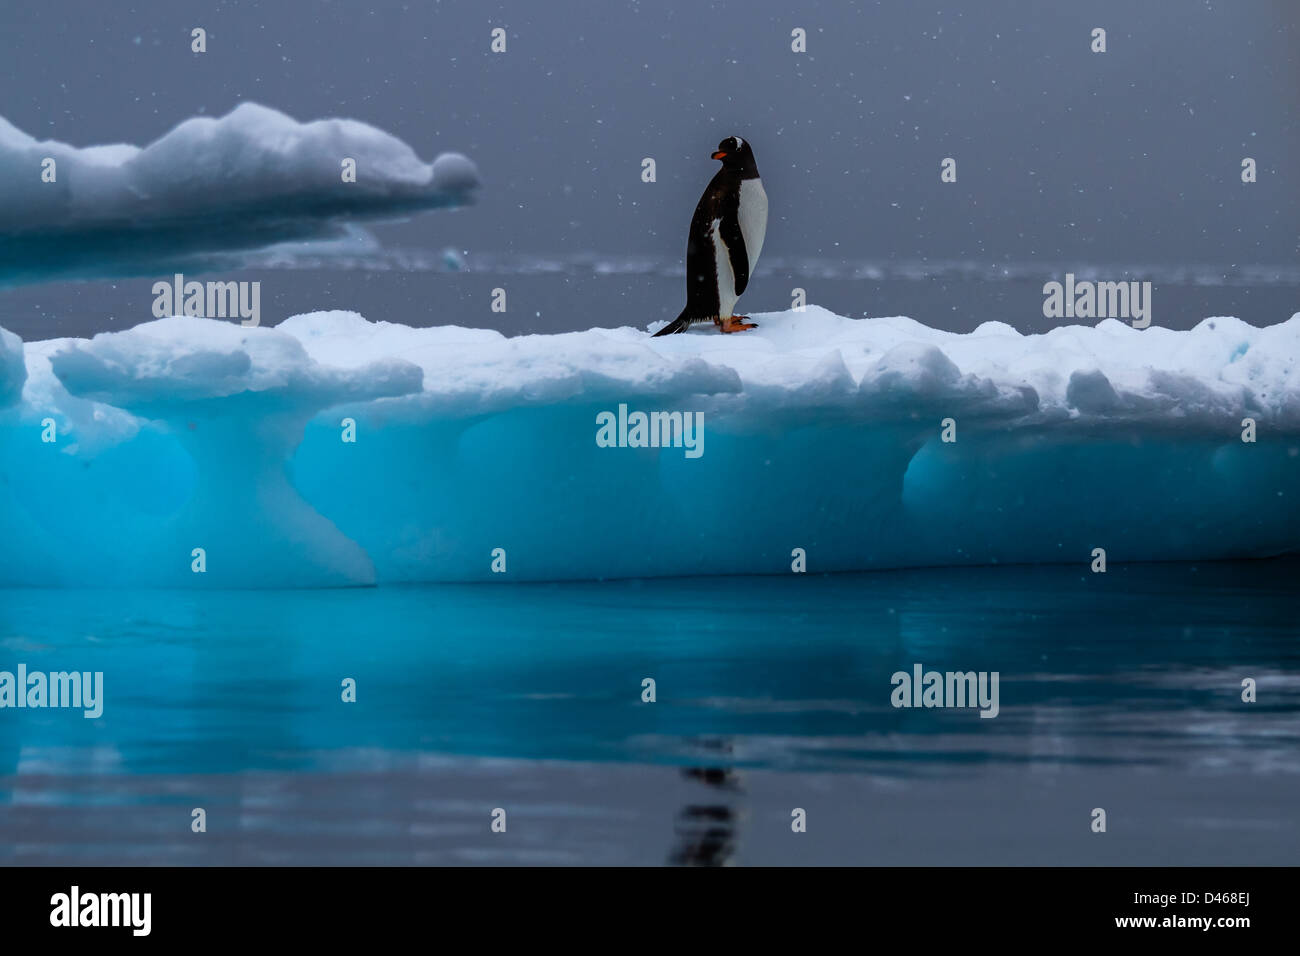 Wildlife watching - Solitary Gentoo penguin standing on a blue iceberg while it's snowing, Antarctica - Stock Image